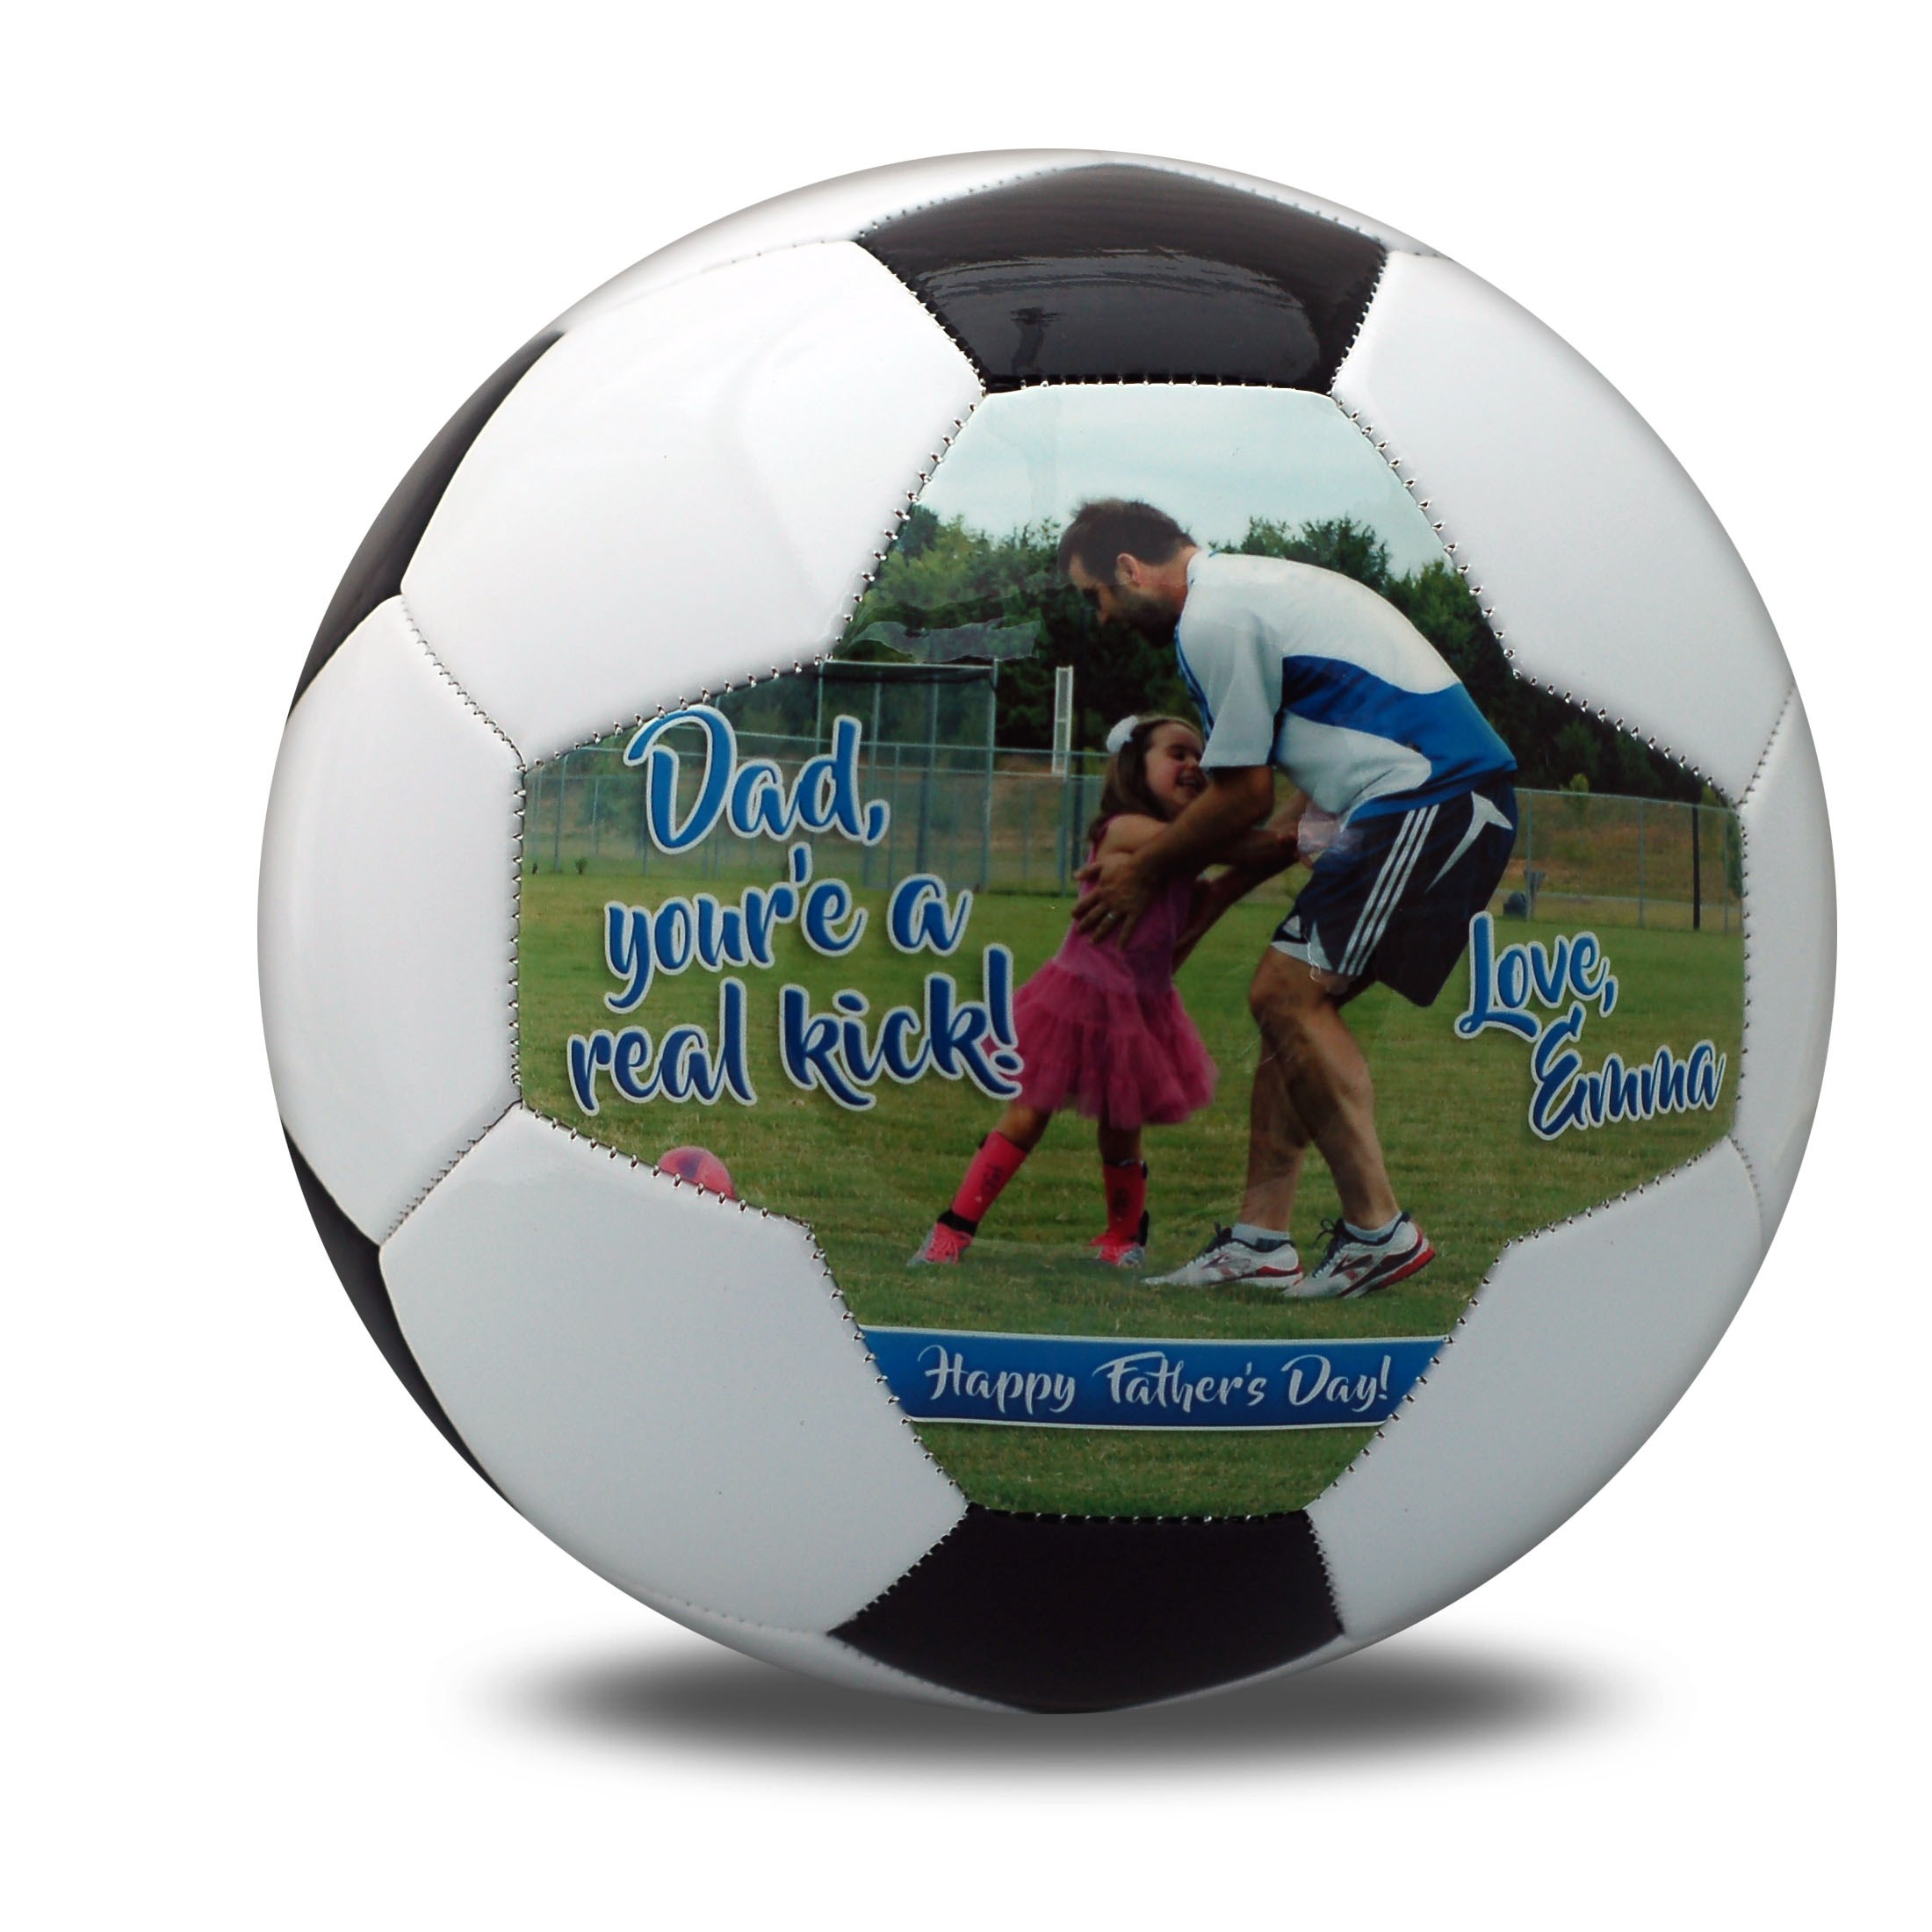 personalized father's day soccerball